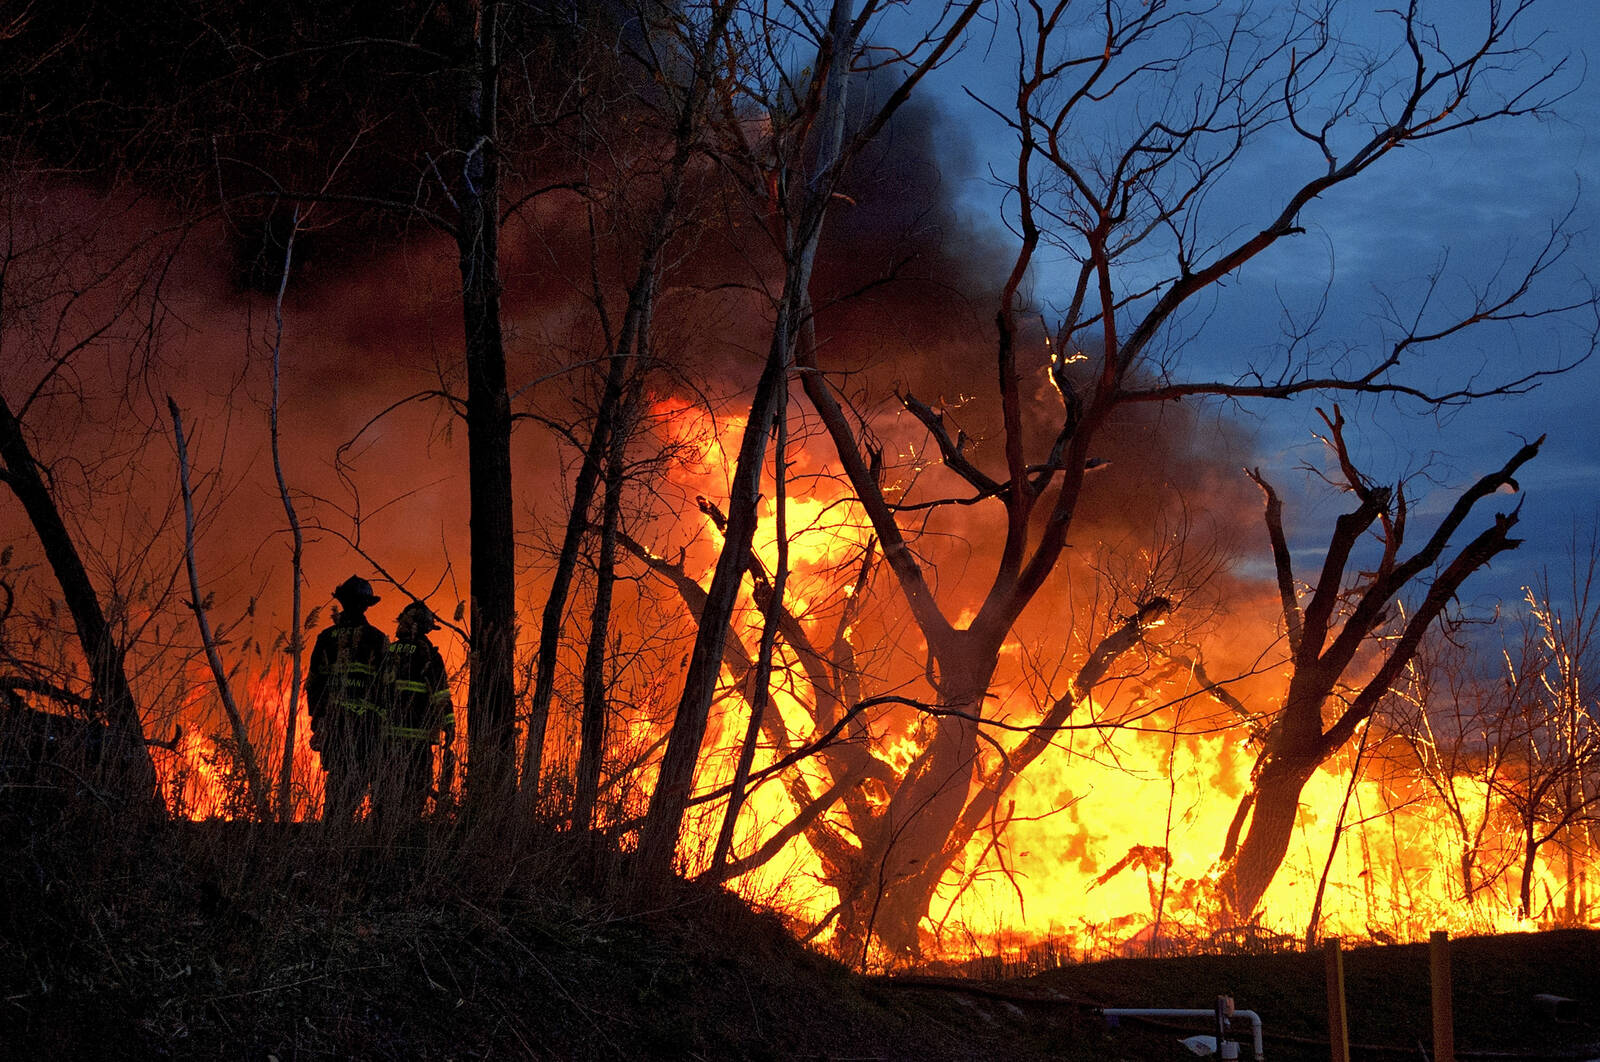 Firefighters battle a brush fire in the Meadowlands near MetLife Stadium on April 11, 2012 in Carlstadt, New Jersey. Credit: Michael Bocchieri/Getty Images